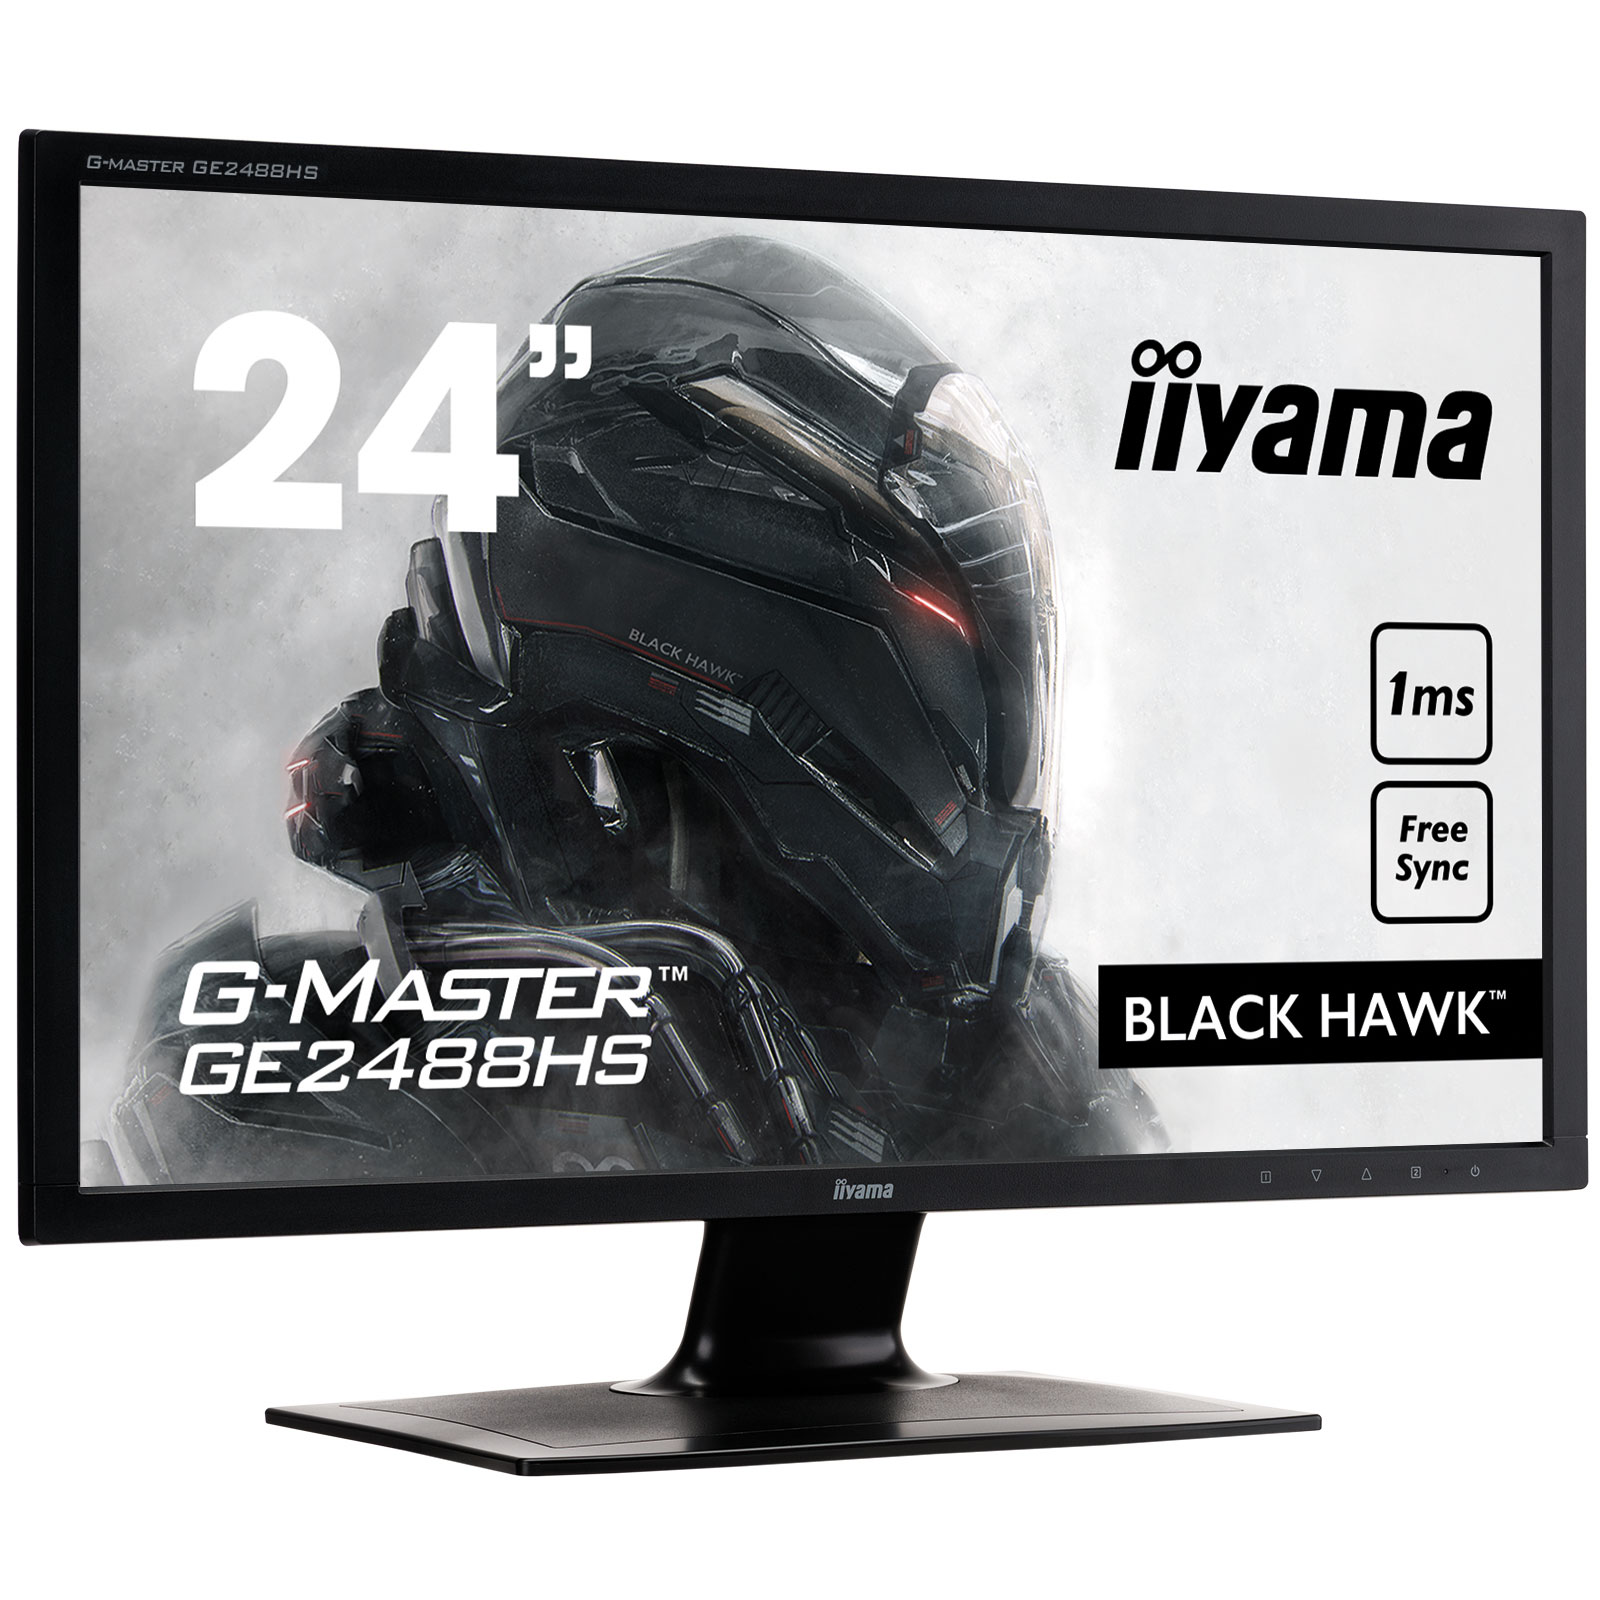 "Ecran PC iiyama 24"" LED - G-MASTER GE2488HS-B2 Black Hawk  1920 x 1080 pixels - 1 ms - Format large 16/9 - FreeSync - HDMI - Noir"